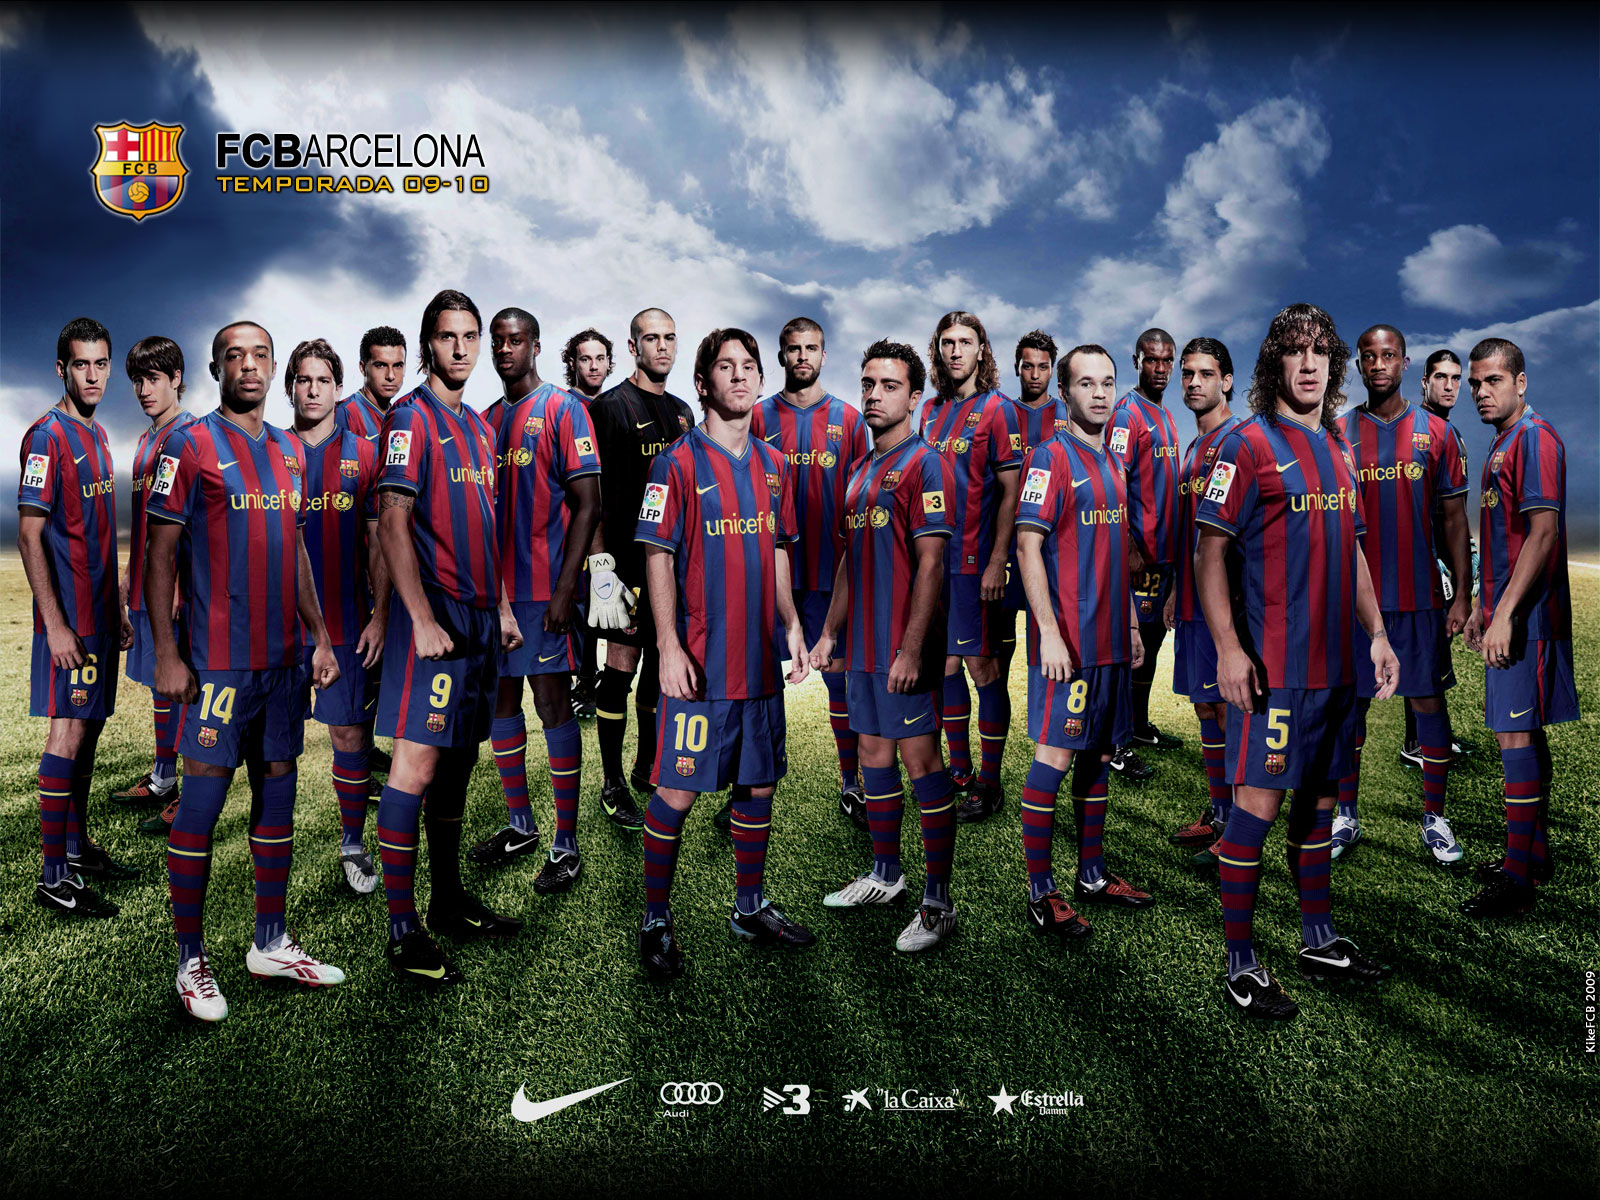 images about barca on Pinterest 1600x1200